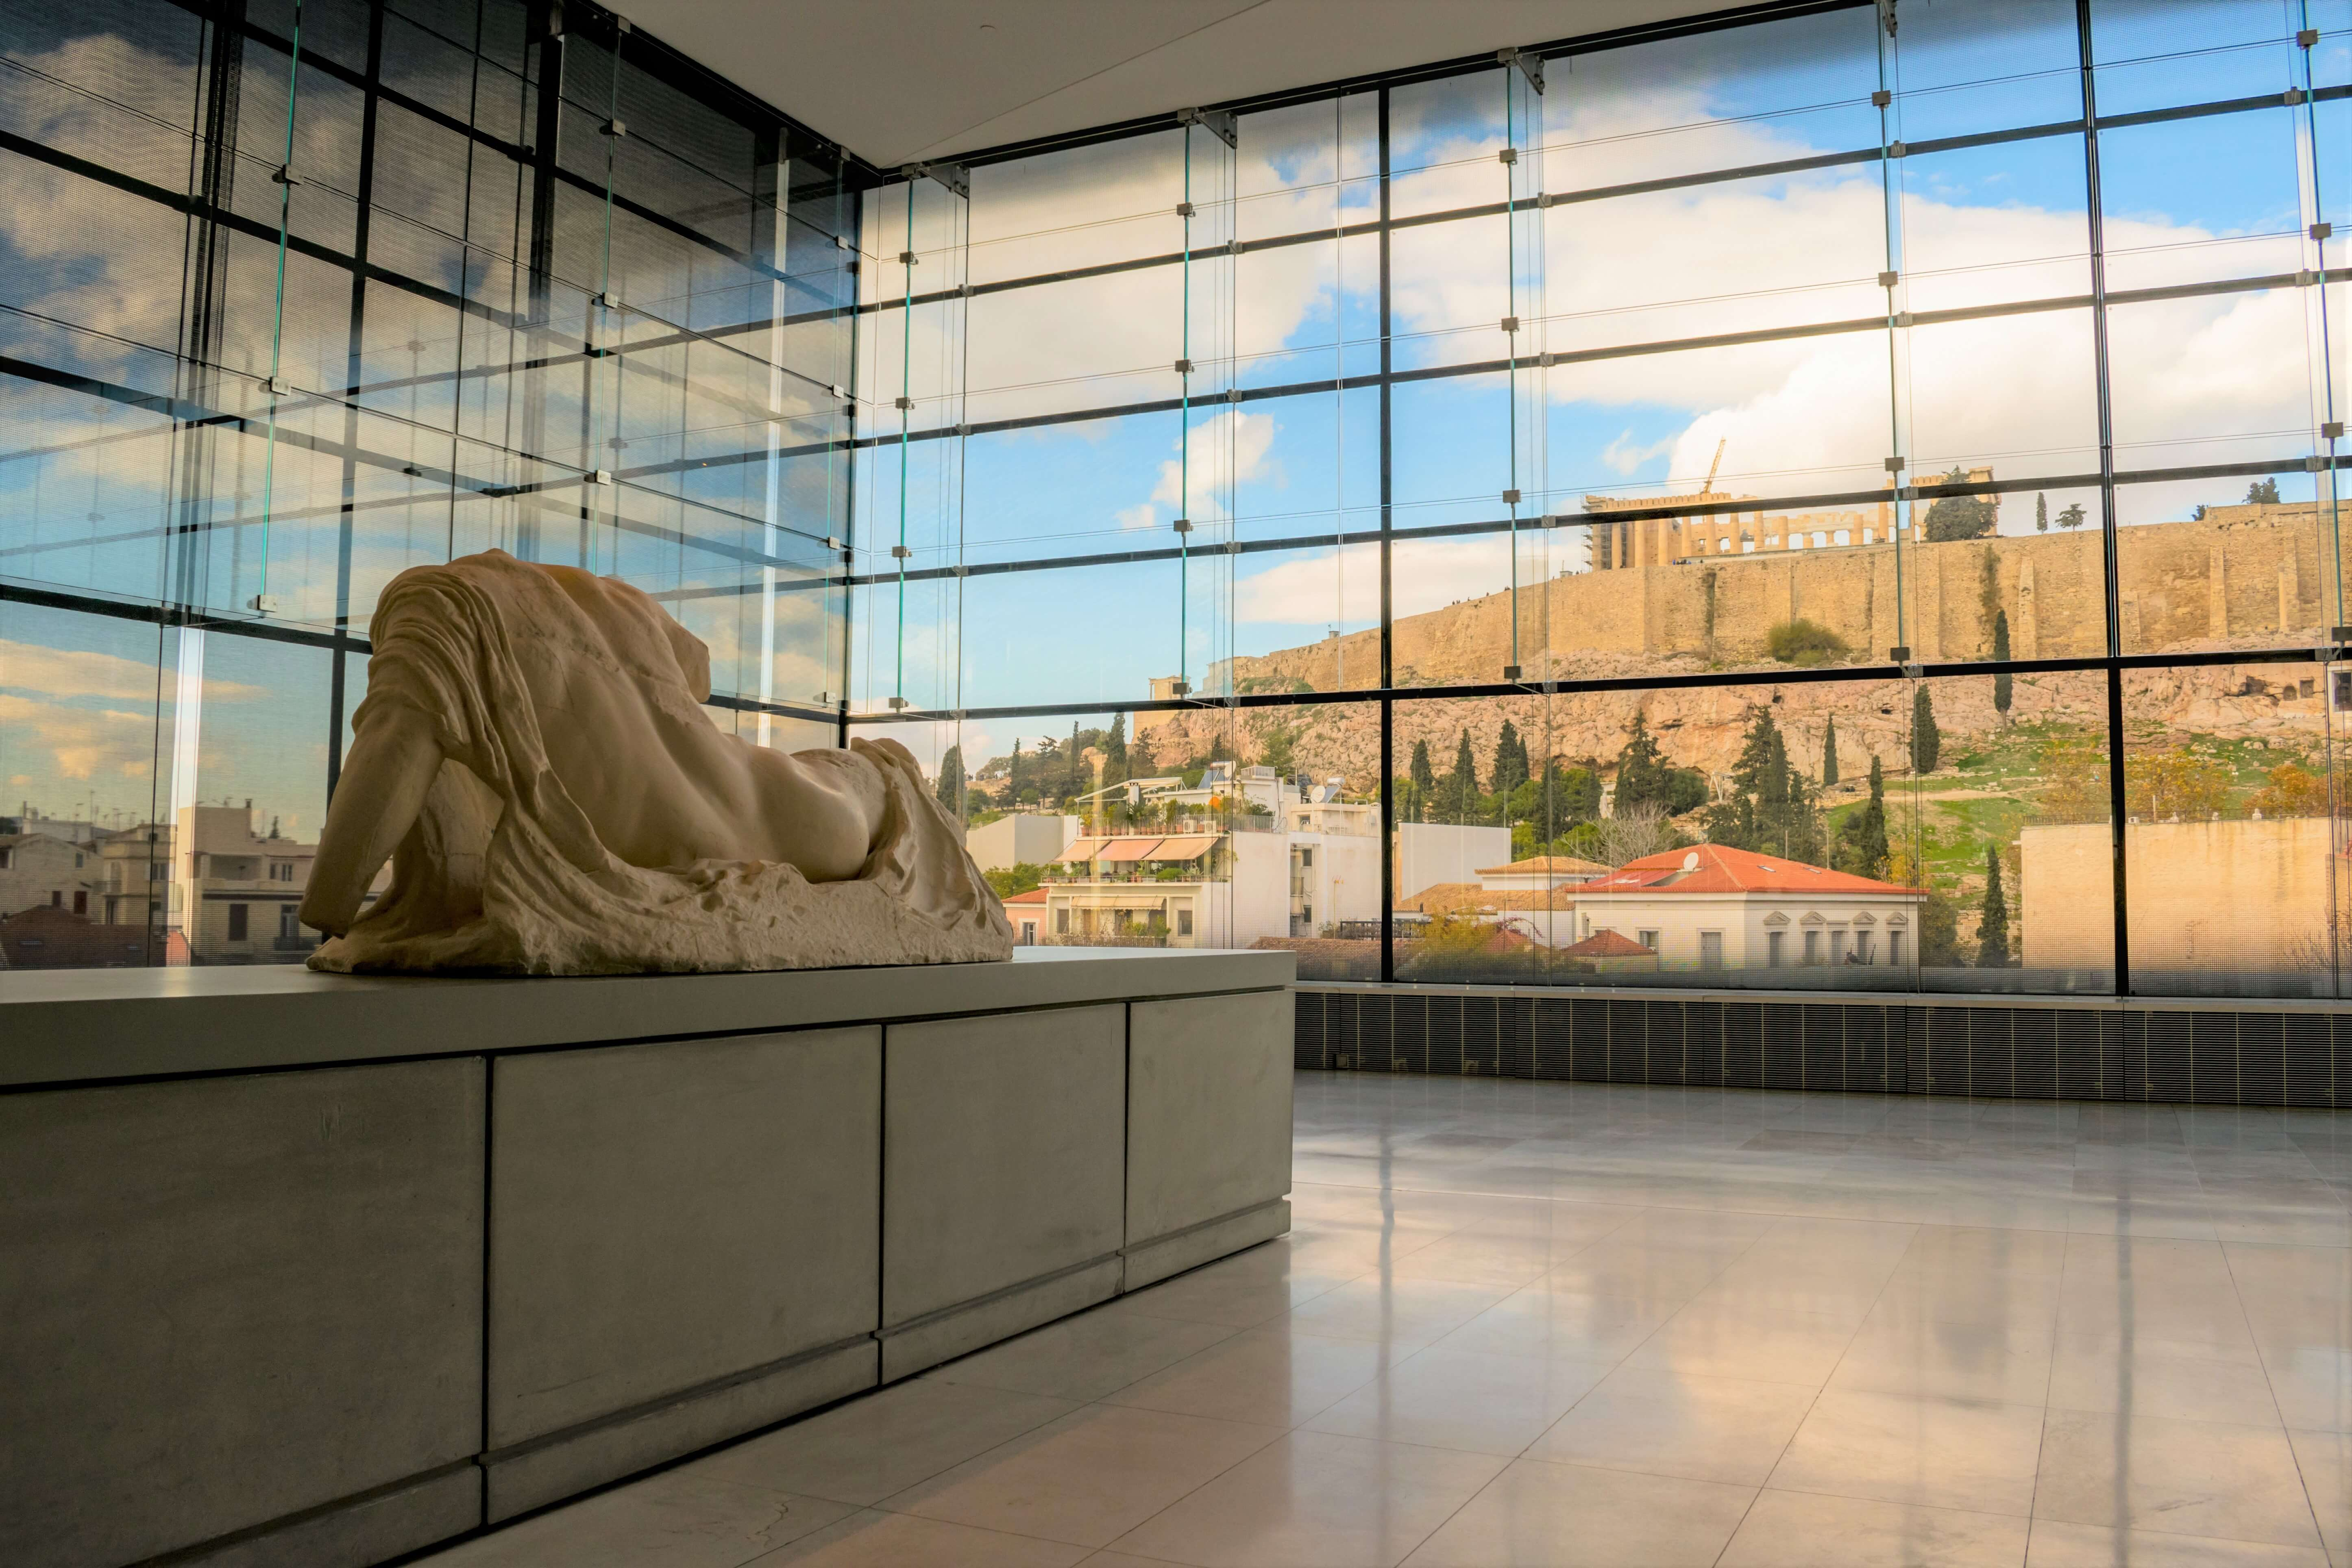 Athens,,Greece:,December,09,,2017:,Interior,View,Of,The,New